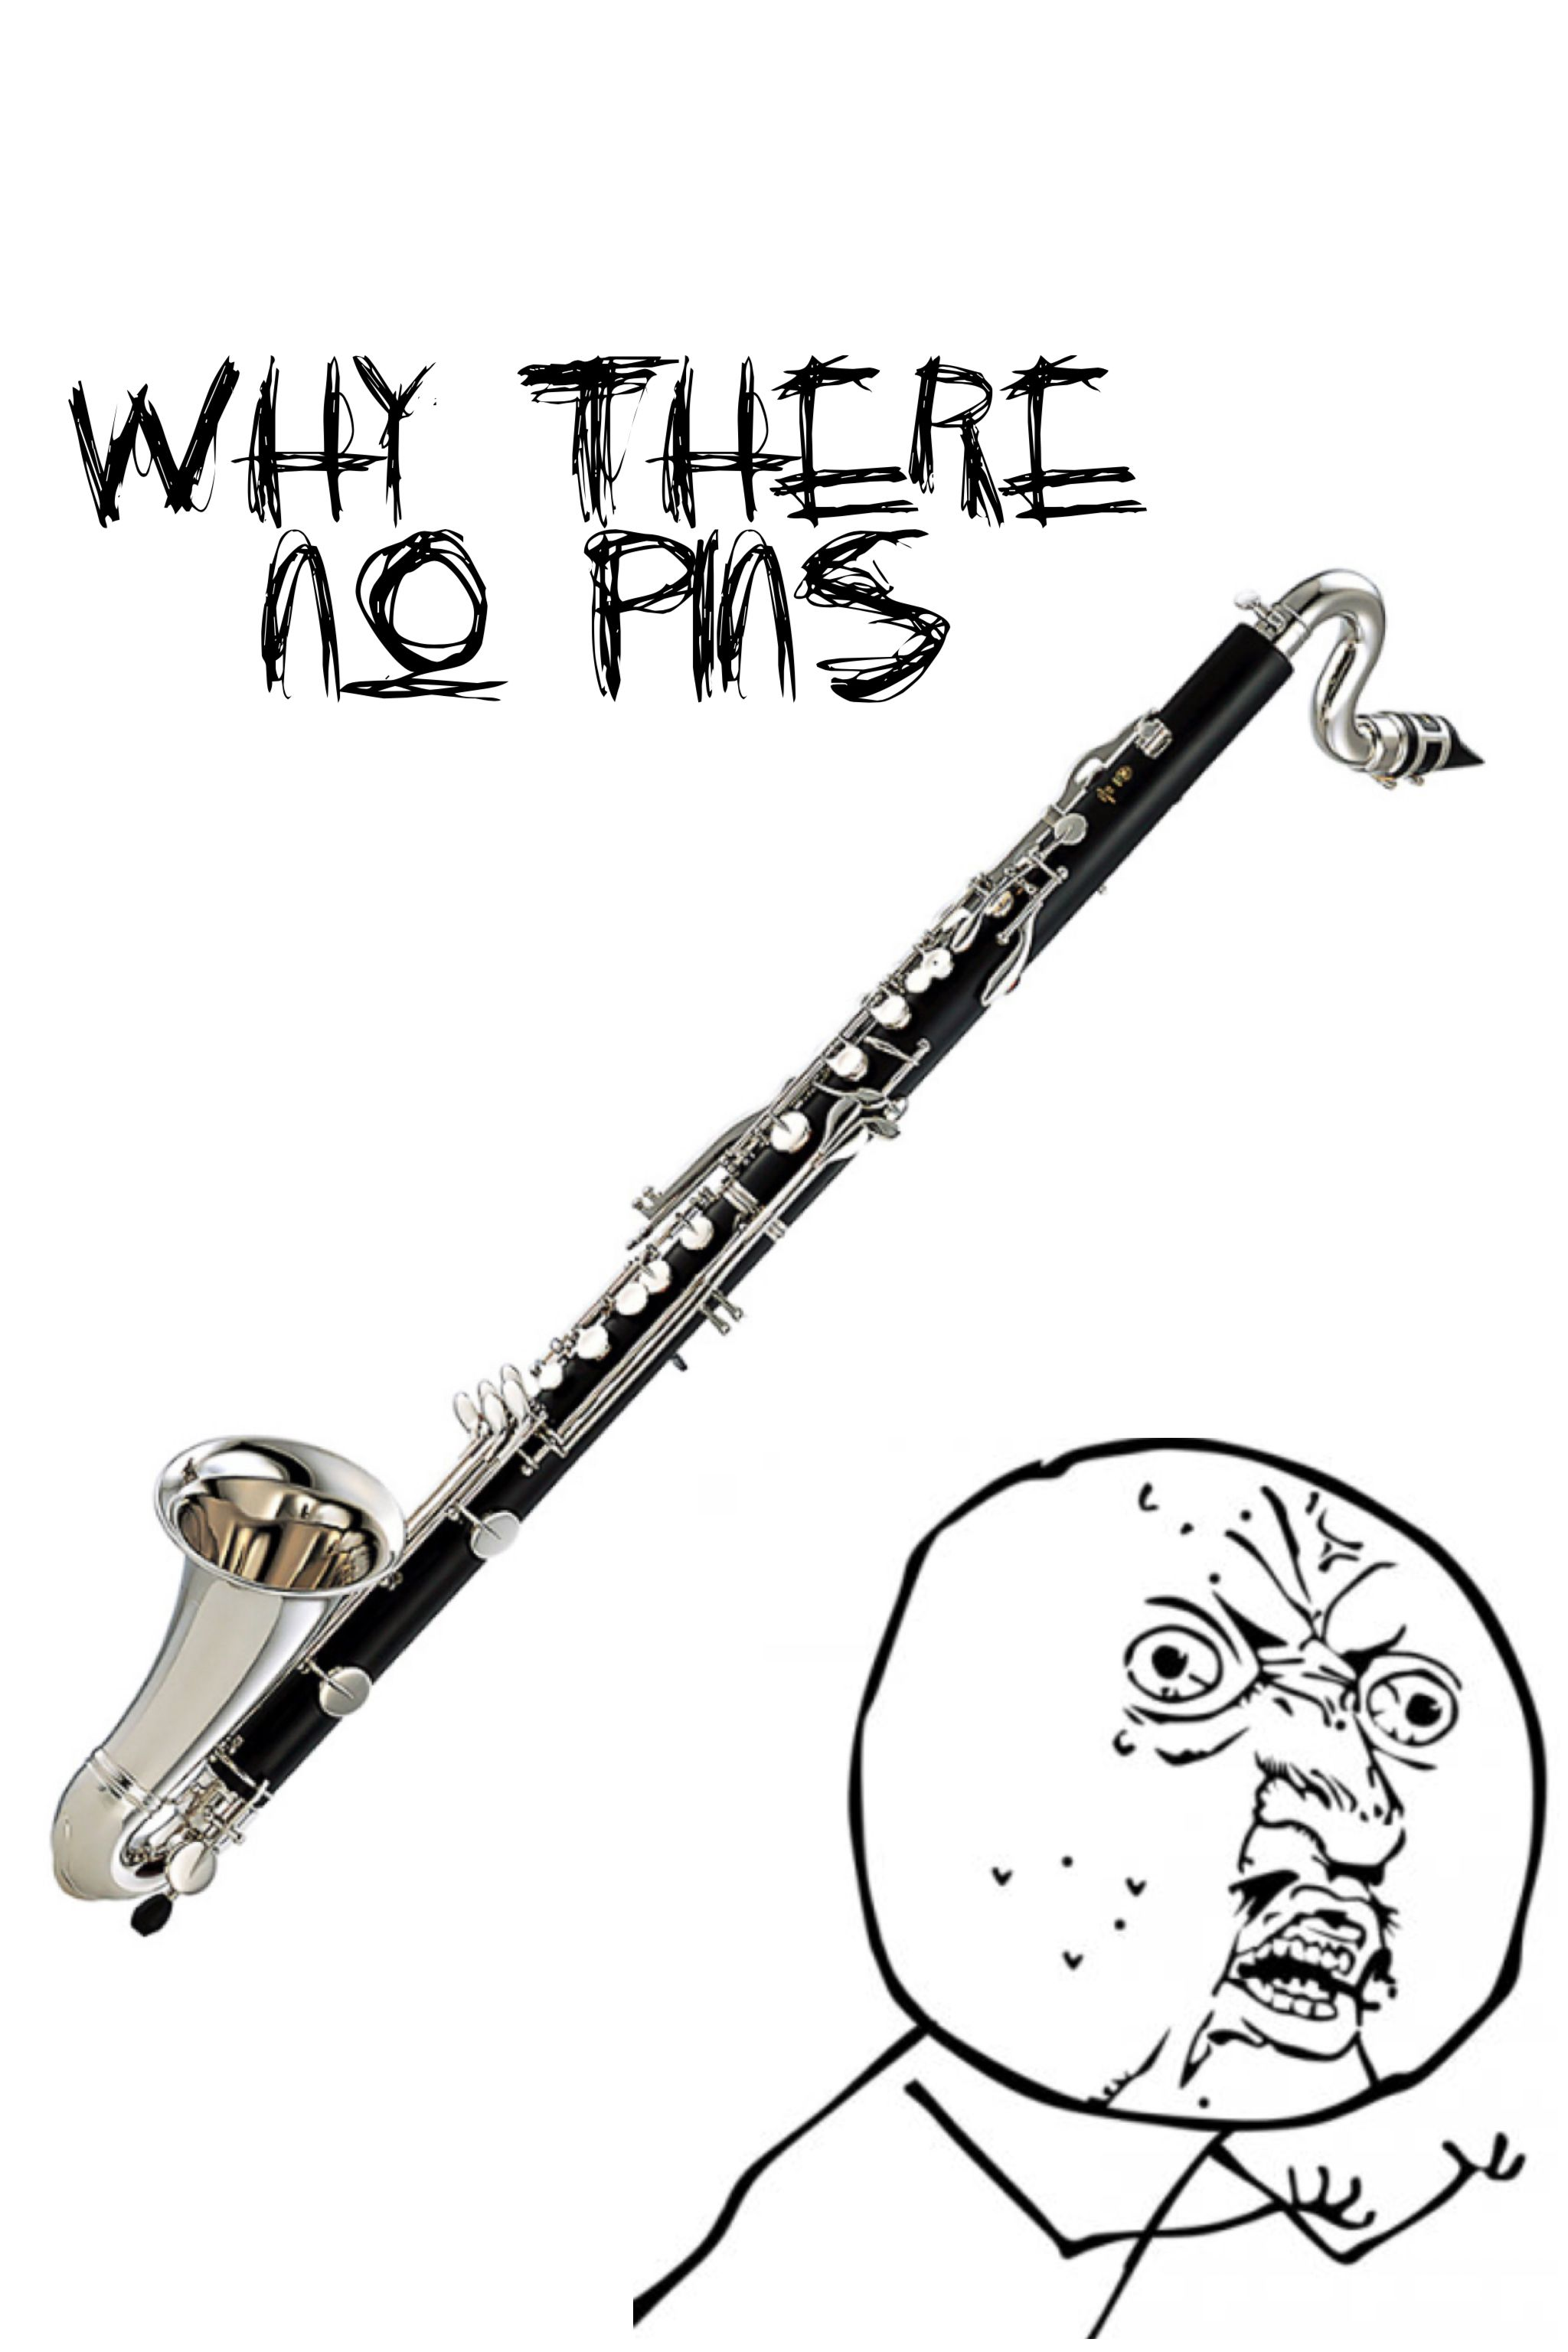 There are never any bass pins Band humor